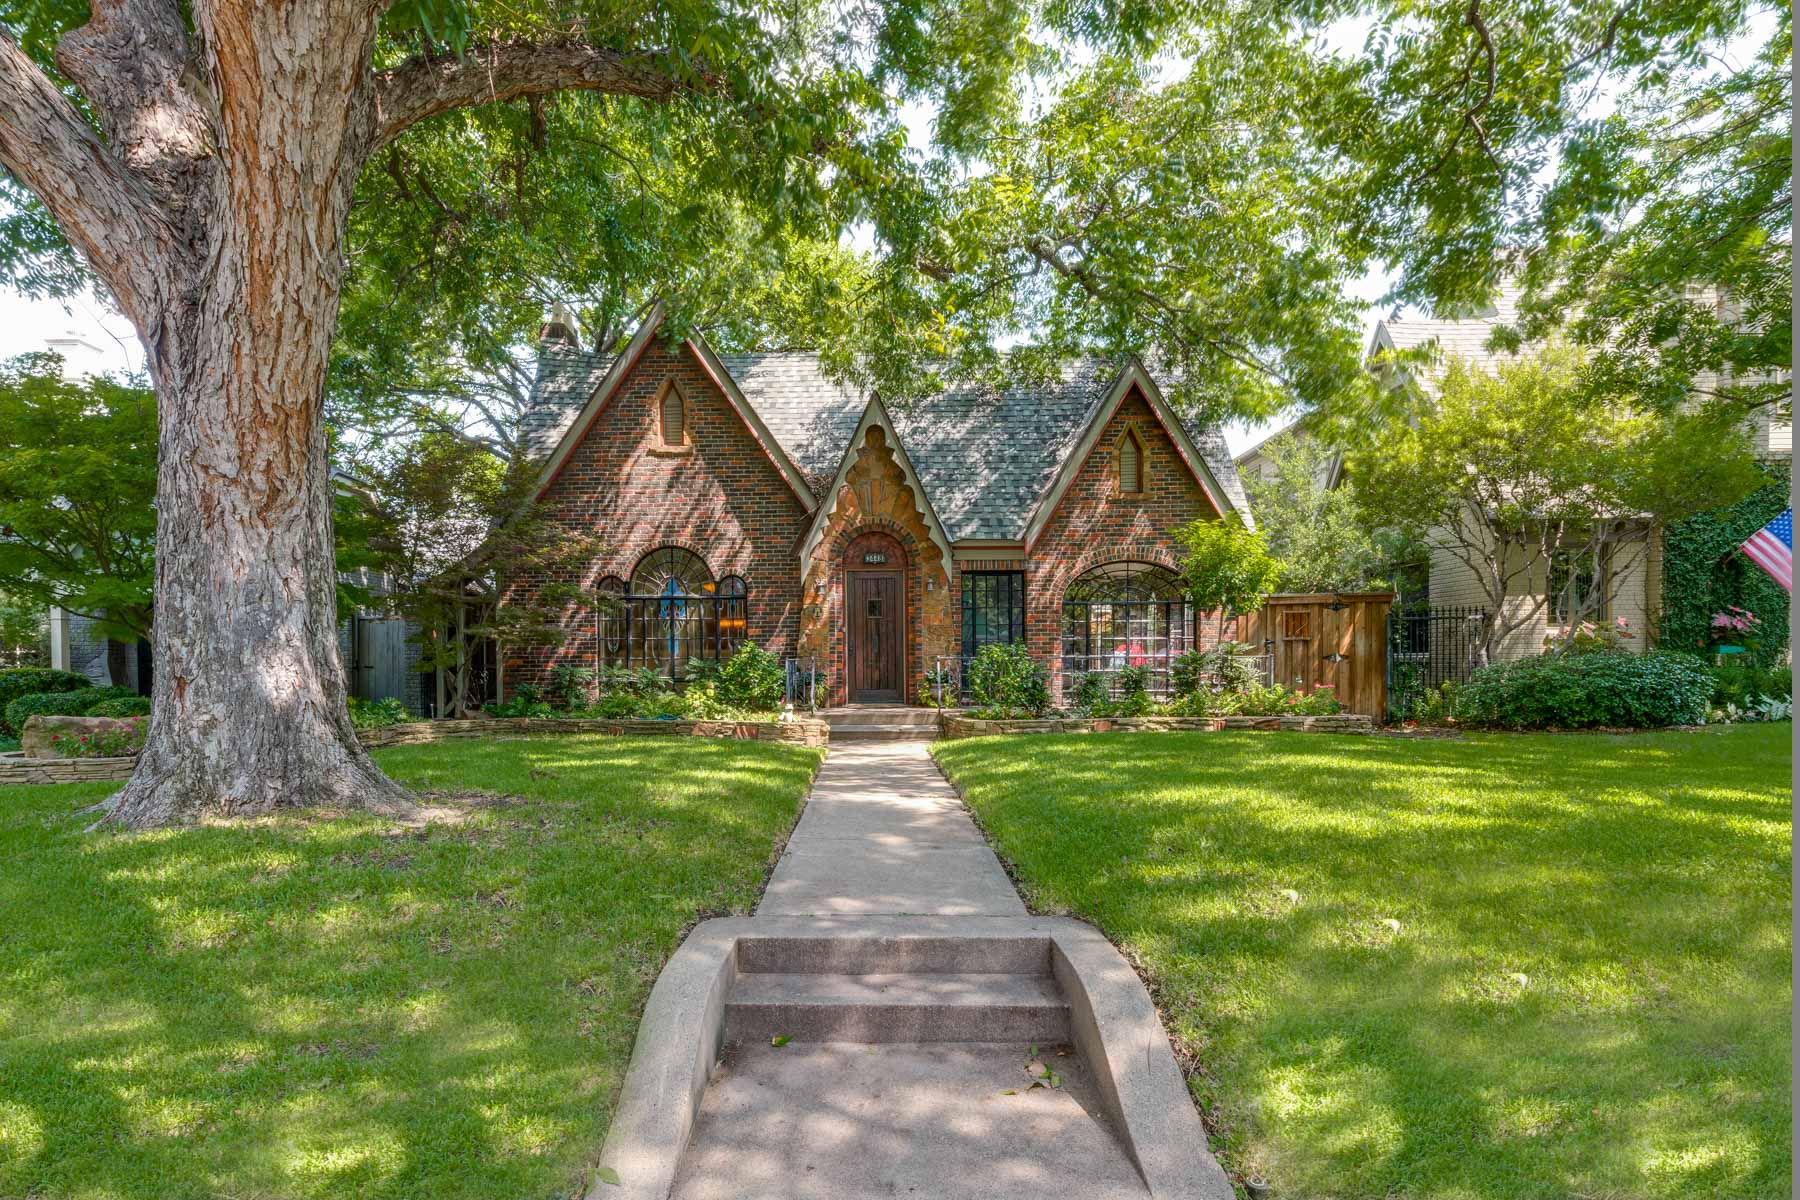 Single Family Home for Sale at Landmarked University Park Tudor 3448 Stanford Avenue Dallas, Texas 75225 United States